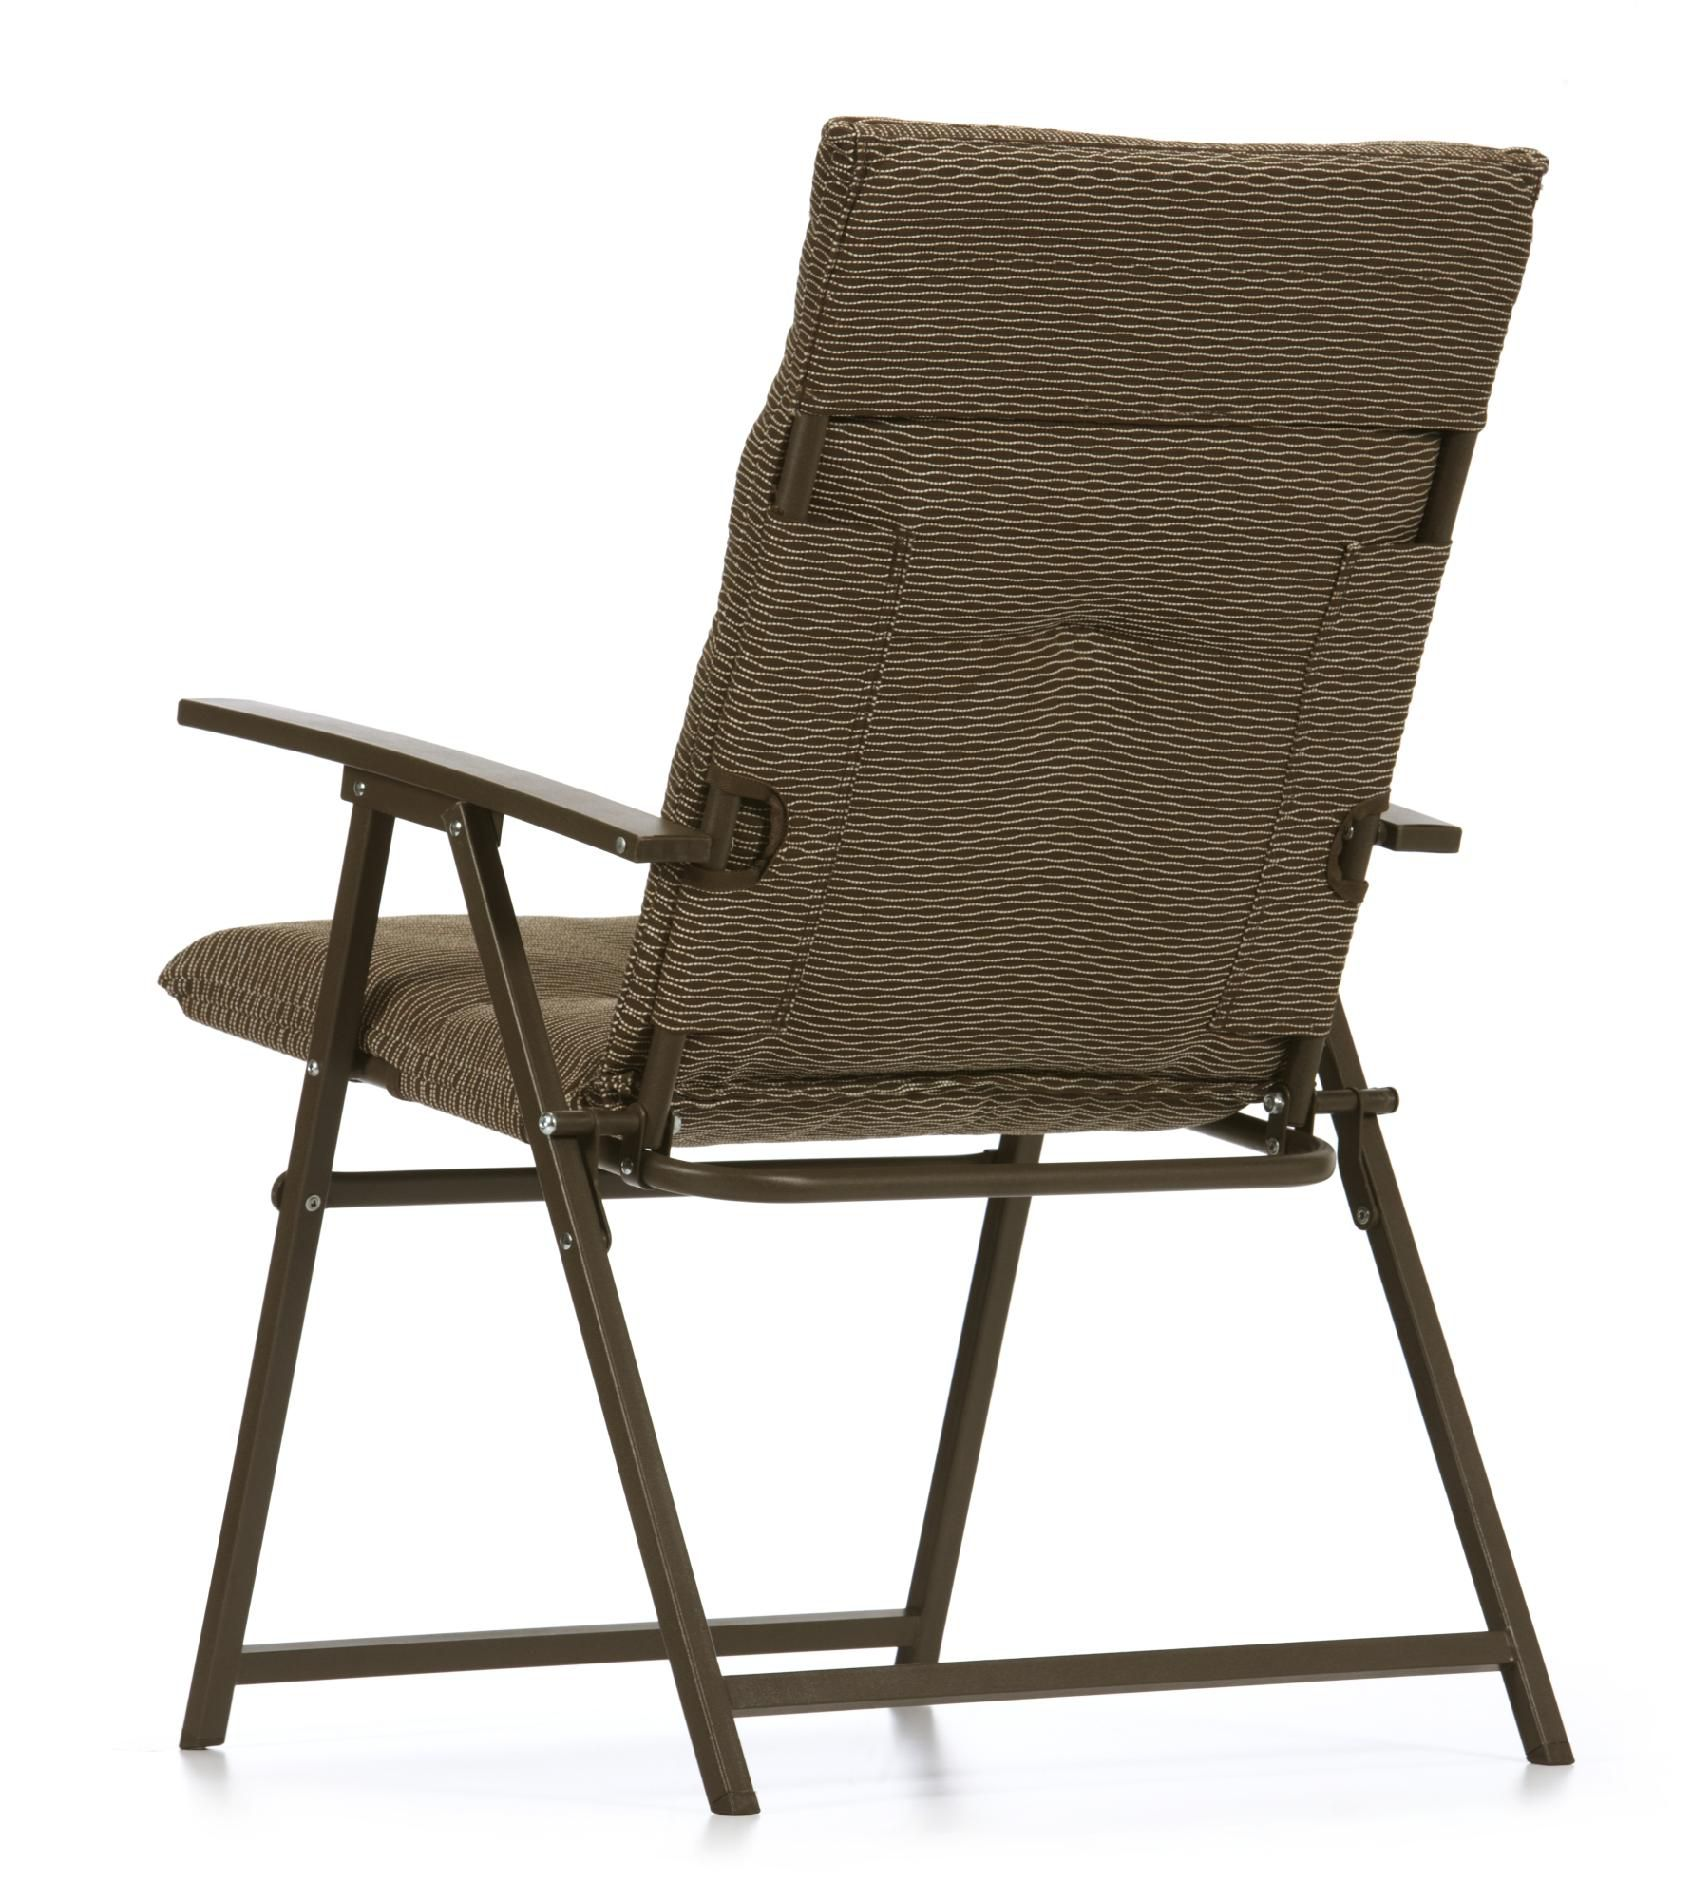 Brief Overview About The Folding Patio Chairs